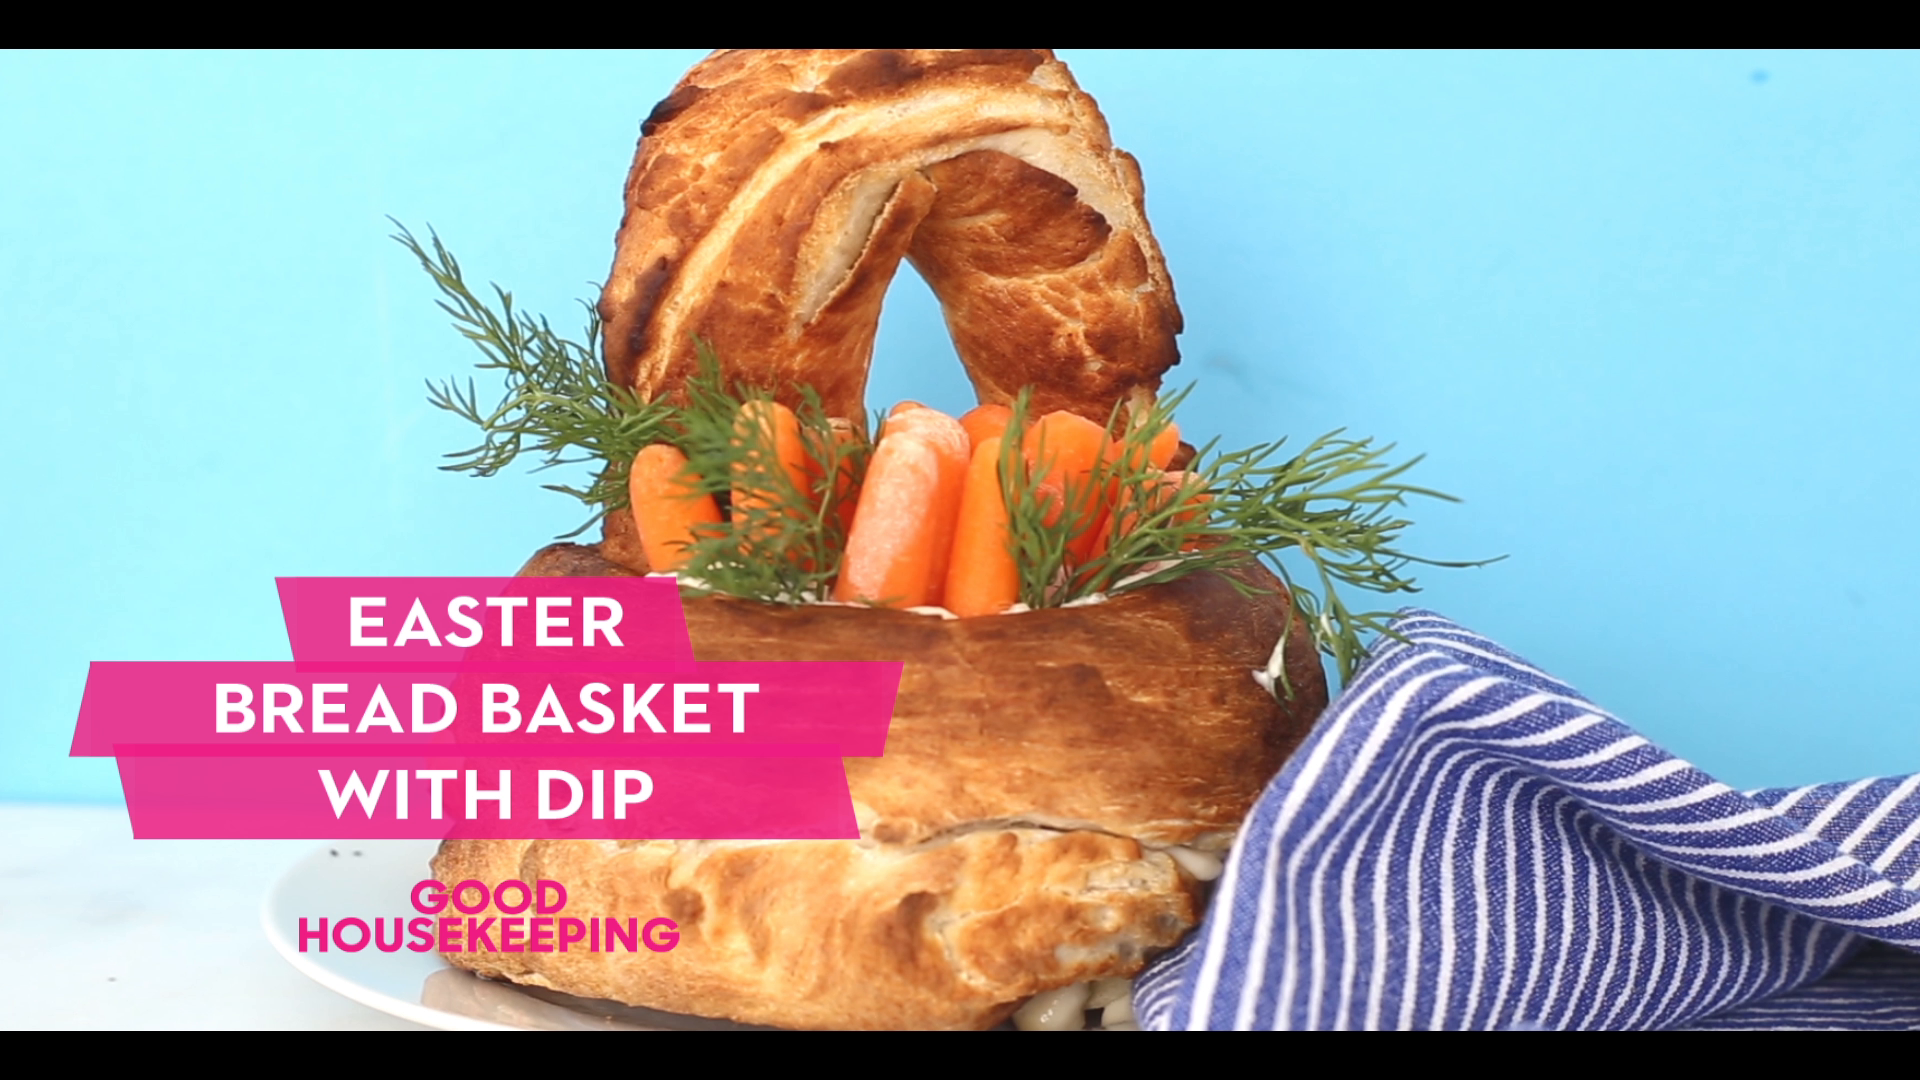 How to Make an Easter Bread Basket